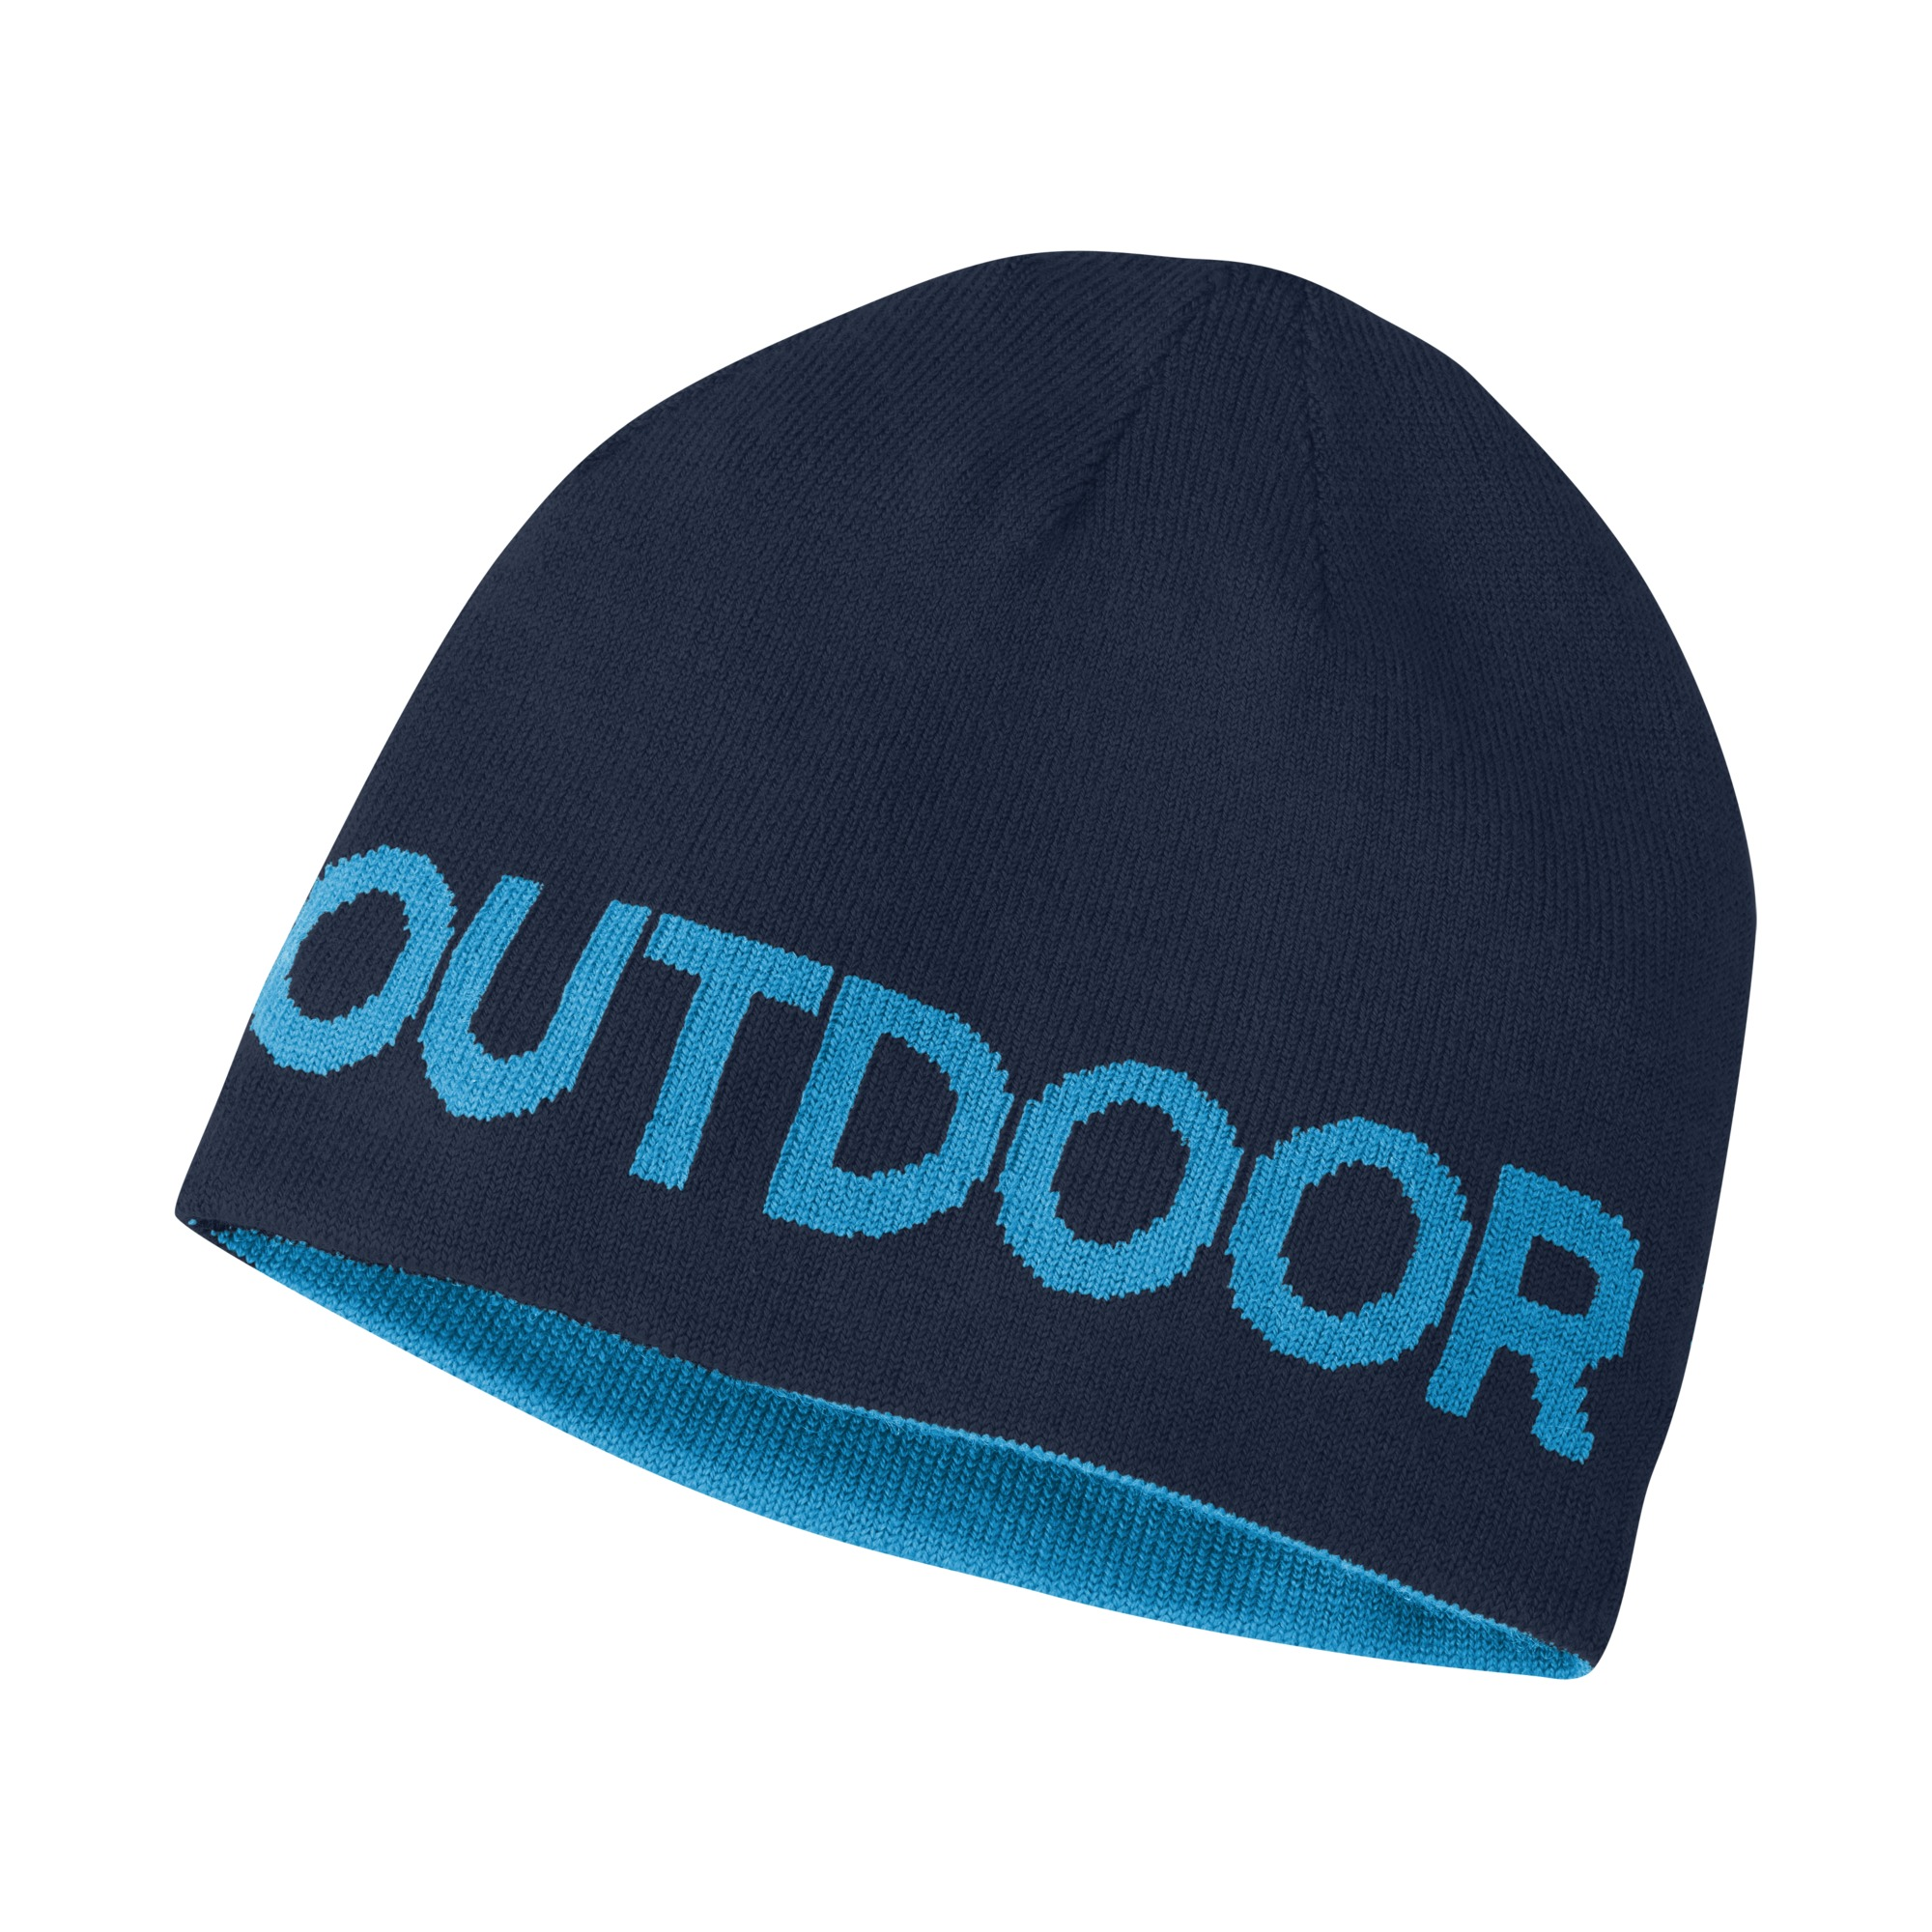 Outdoor Research Booster Beanie-night/tahoe-1size - Gr. 1size